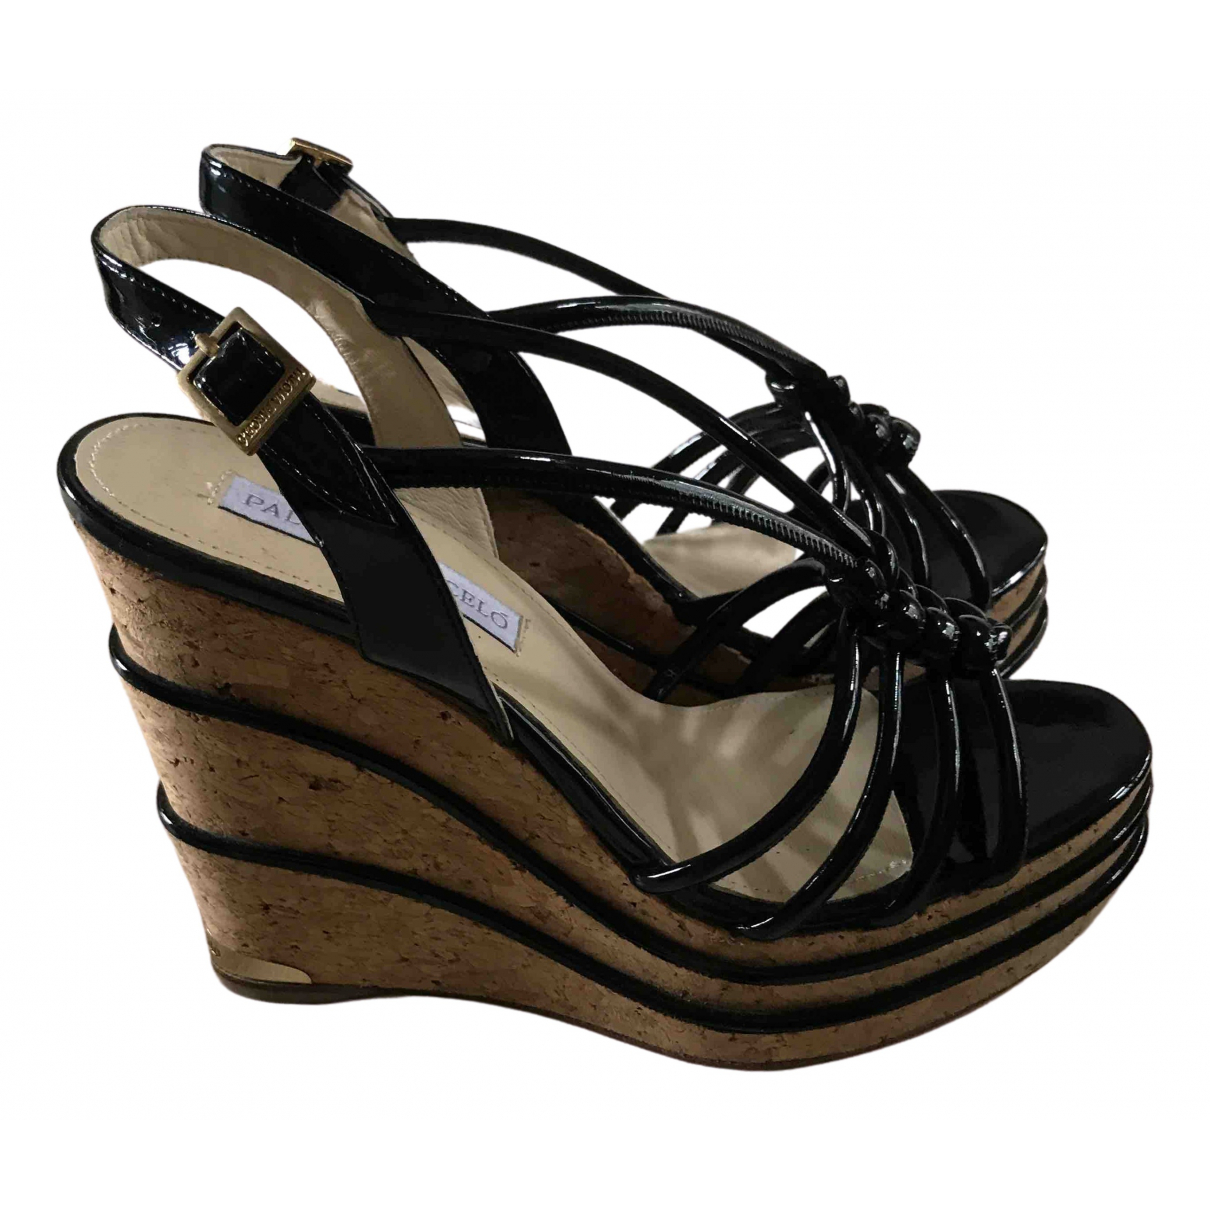 Paloma Barcelo \N Black Patent leather Sandals for Women 40 EU